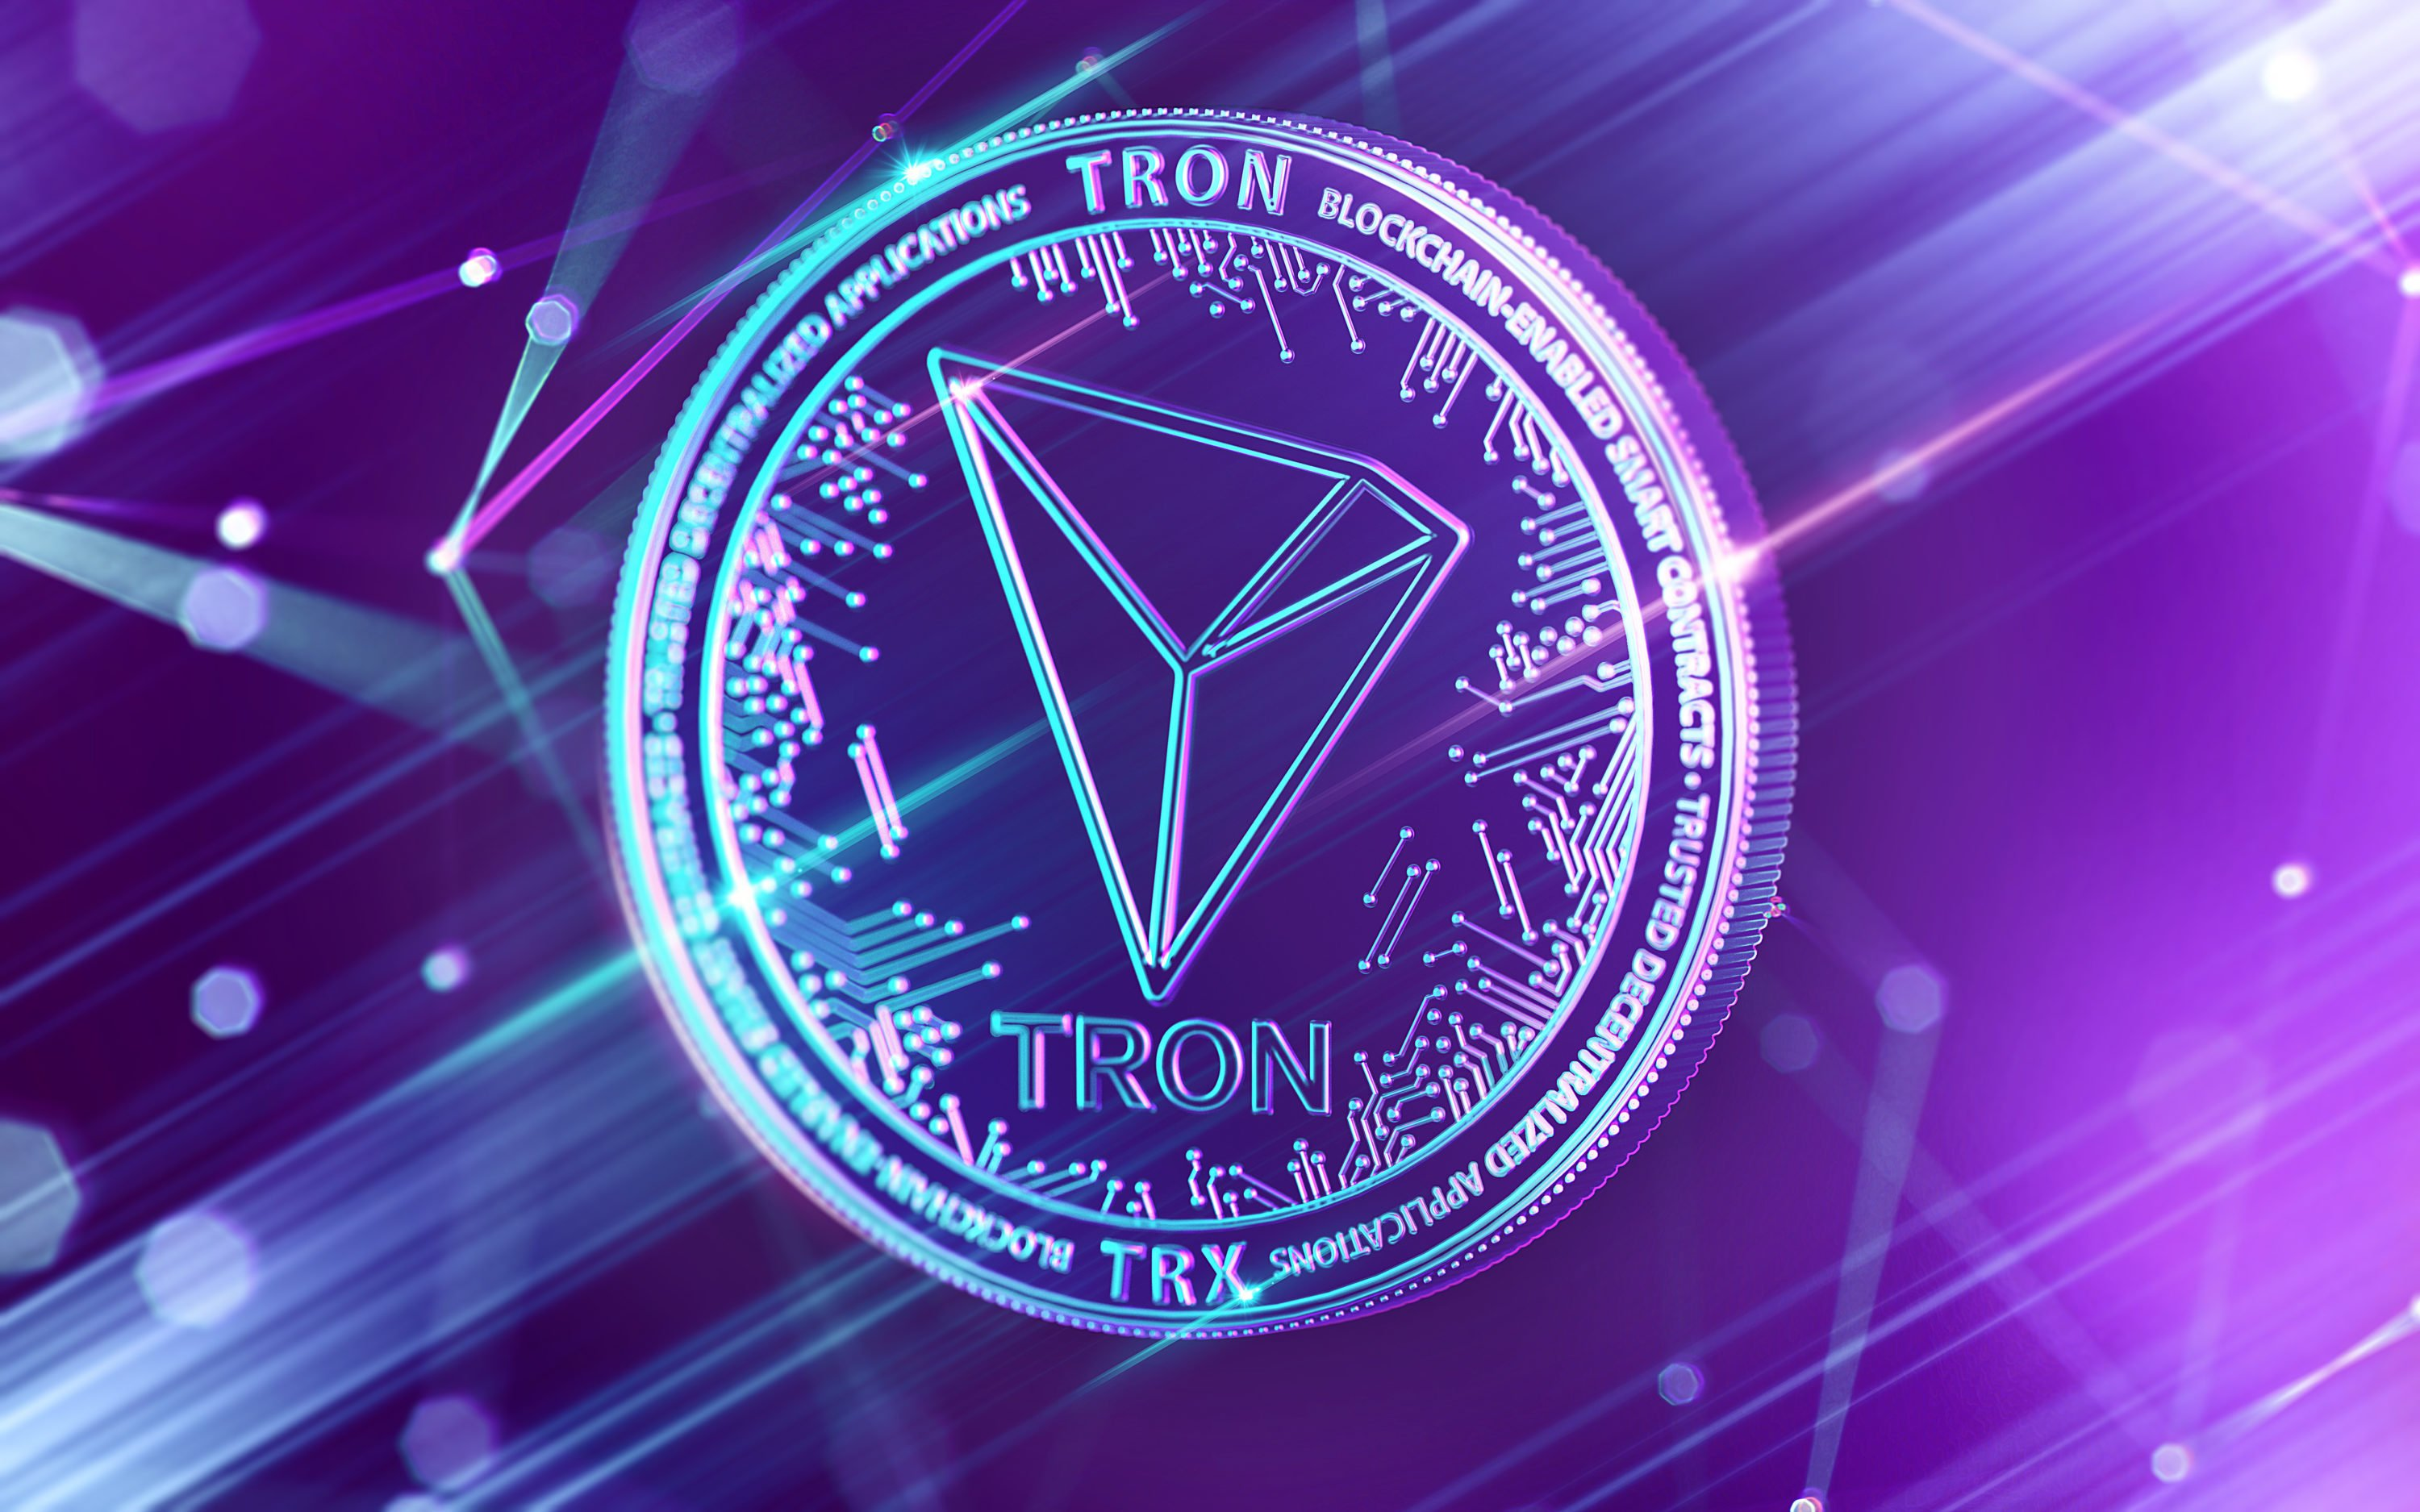 , Exclusive: Why The Hell Is Tron CEO Sun Giving Away  Million?, Biedex: Technical Analysis, Stockmarkets Insights, Trading Tools